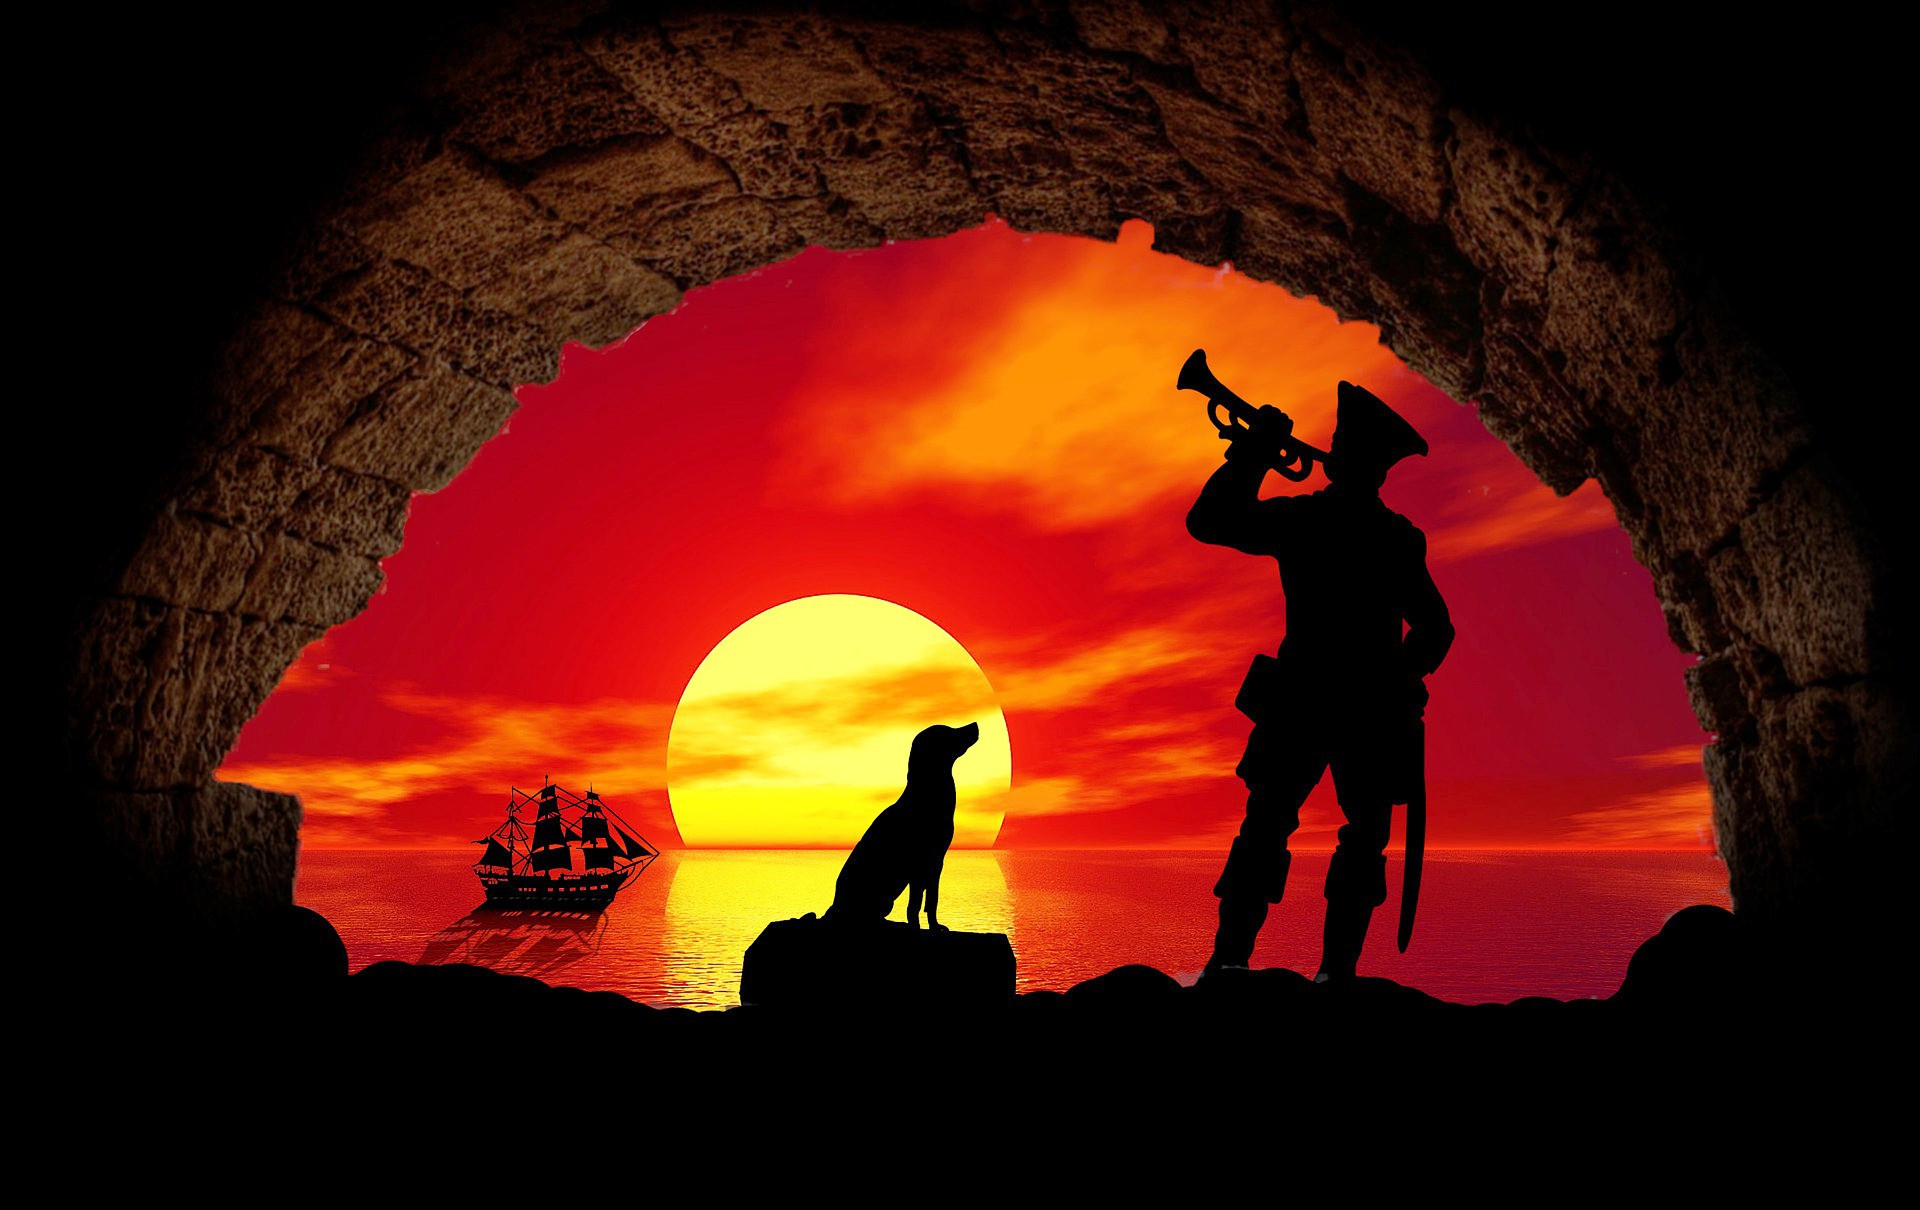 Viewer is inside a dark cave looking out to a glorious sunset. Silhouetted are a pirate ship at background right with a dog sitting on a rock at center, attentively watching a pirate bugler at right foreground.